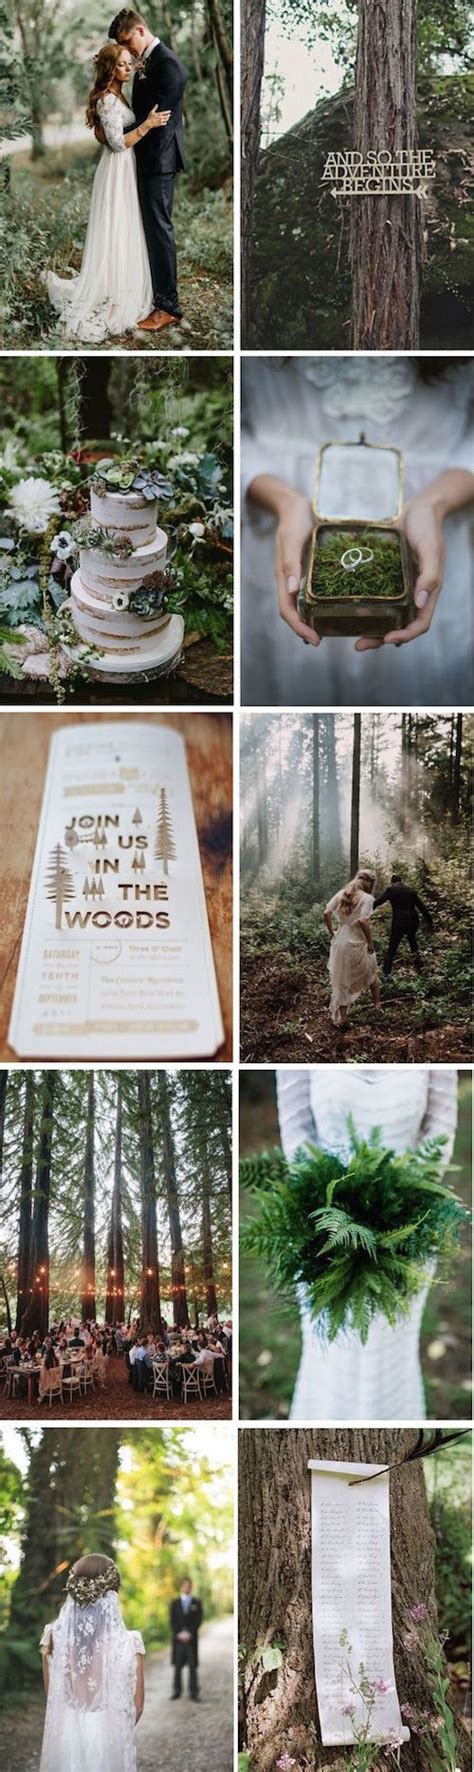 enchanted forest wedding ideas create the enchanted forest wedding ideas create the